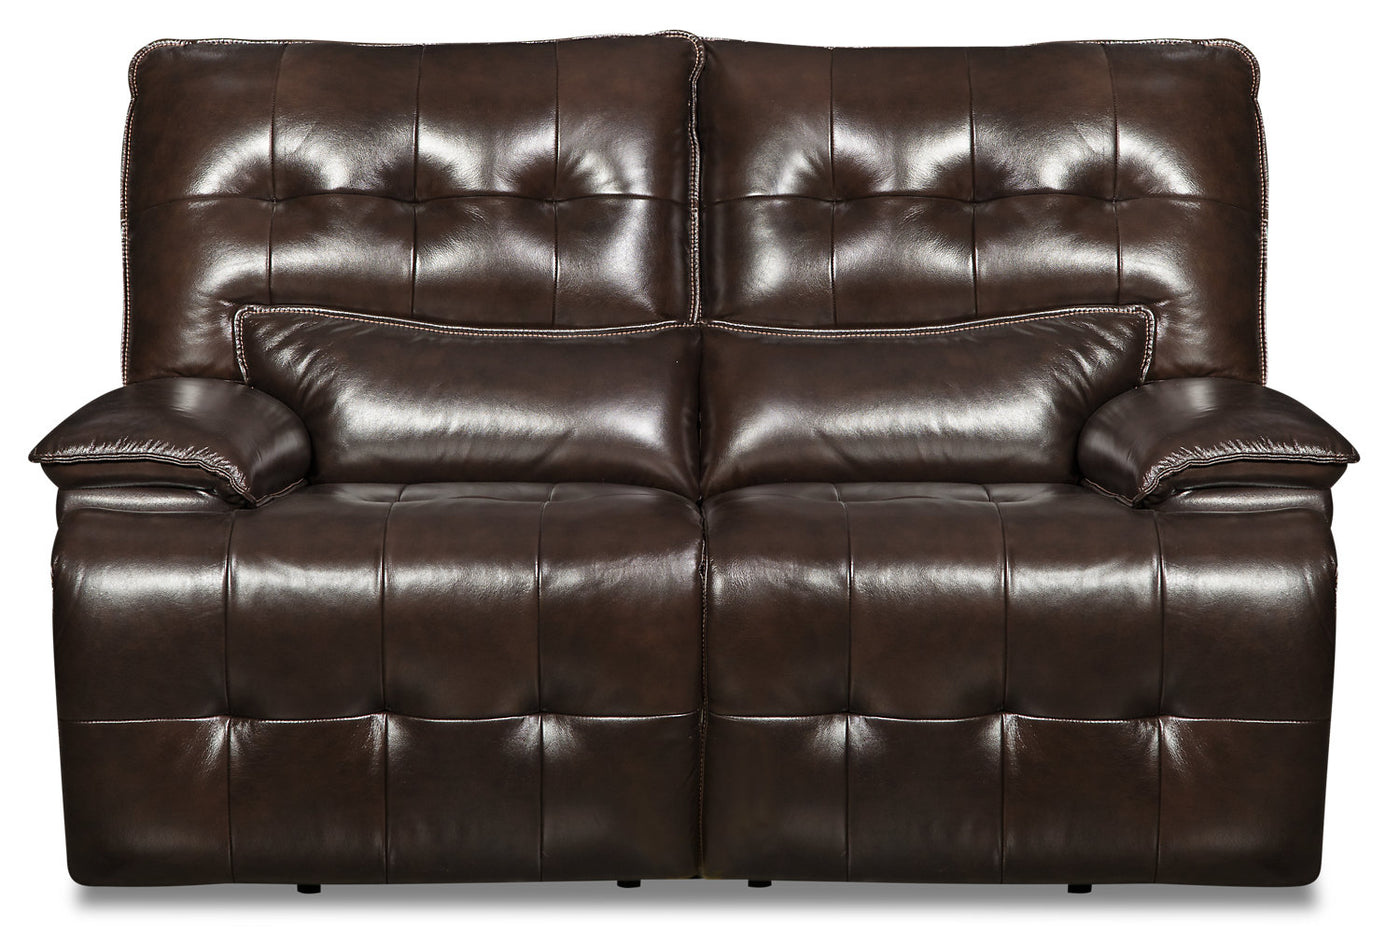 Swell Taja Genuine Leather Power Reclining Loveseat With Power Headrest Brown Beatyapartments Chair Design Images Beatyapartmentscom